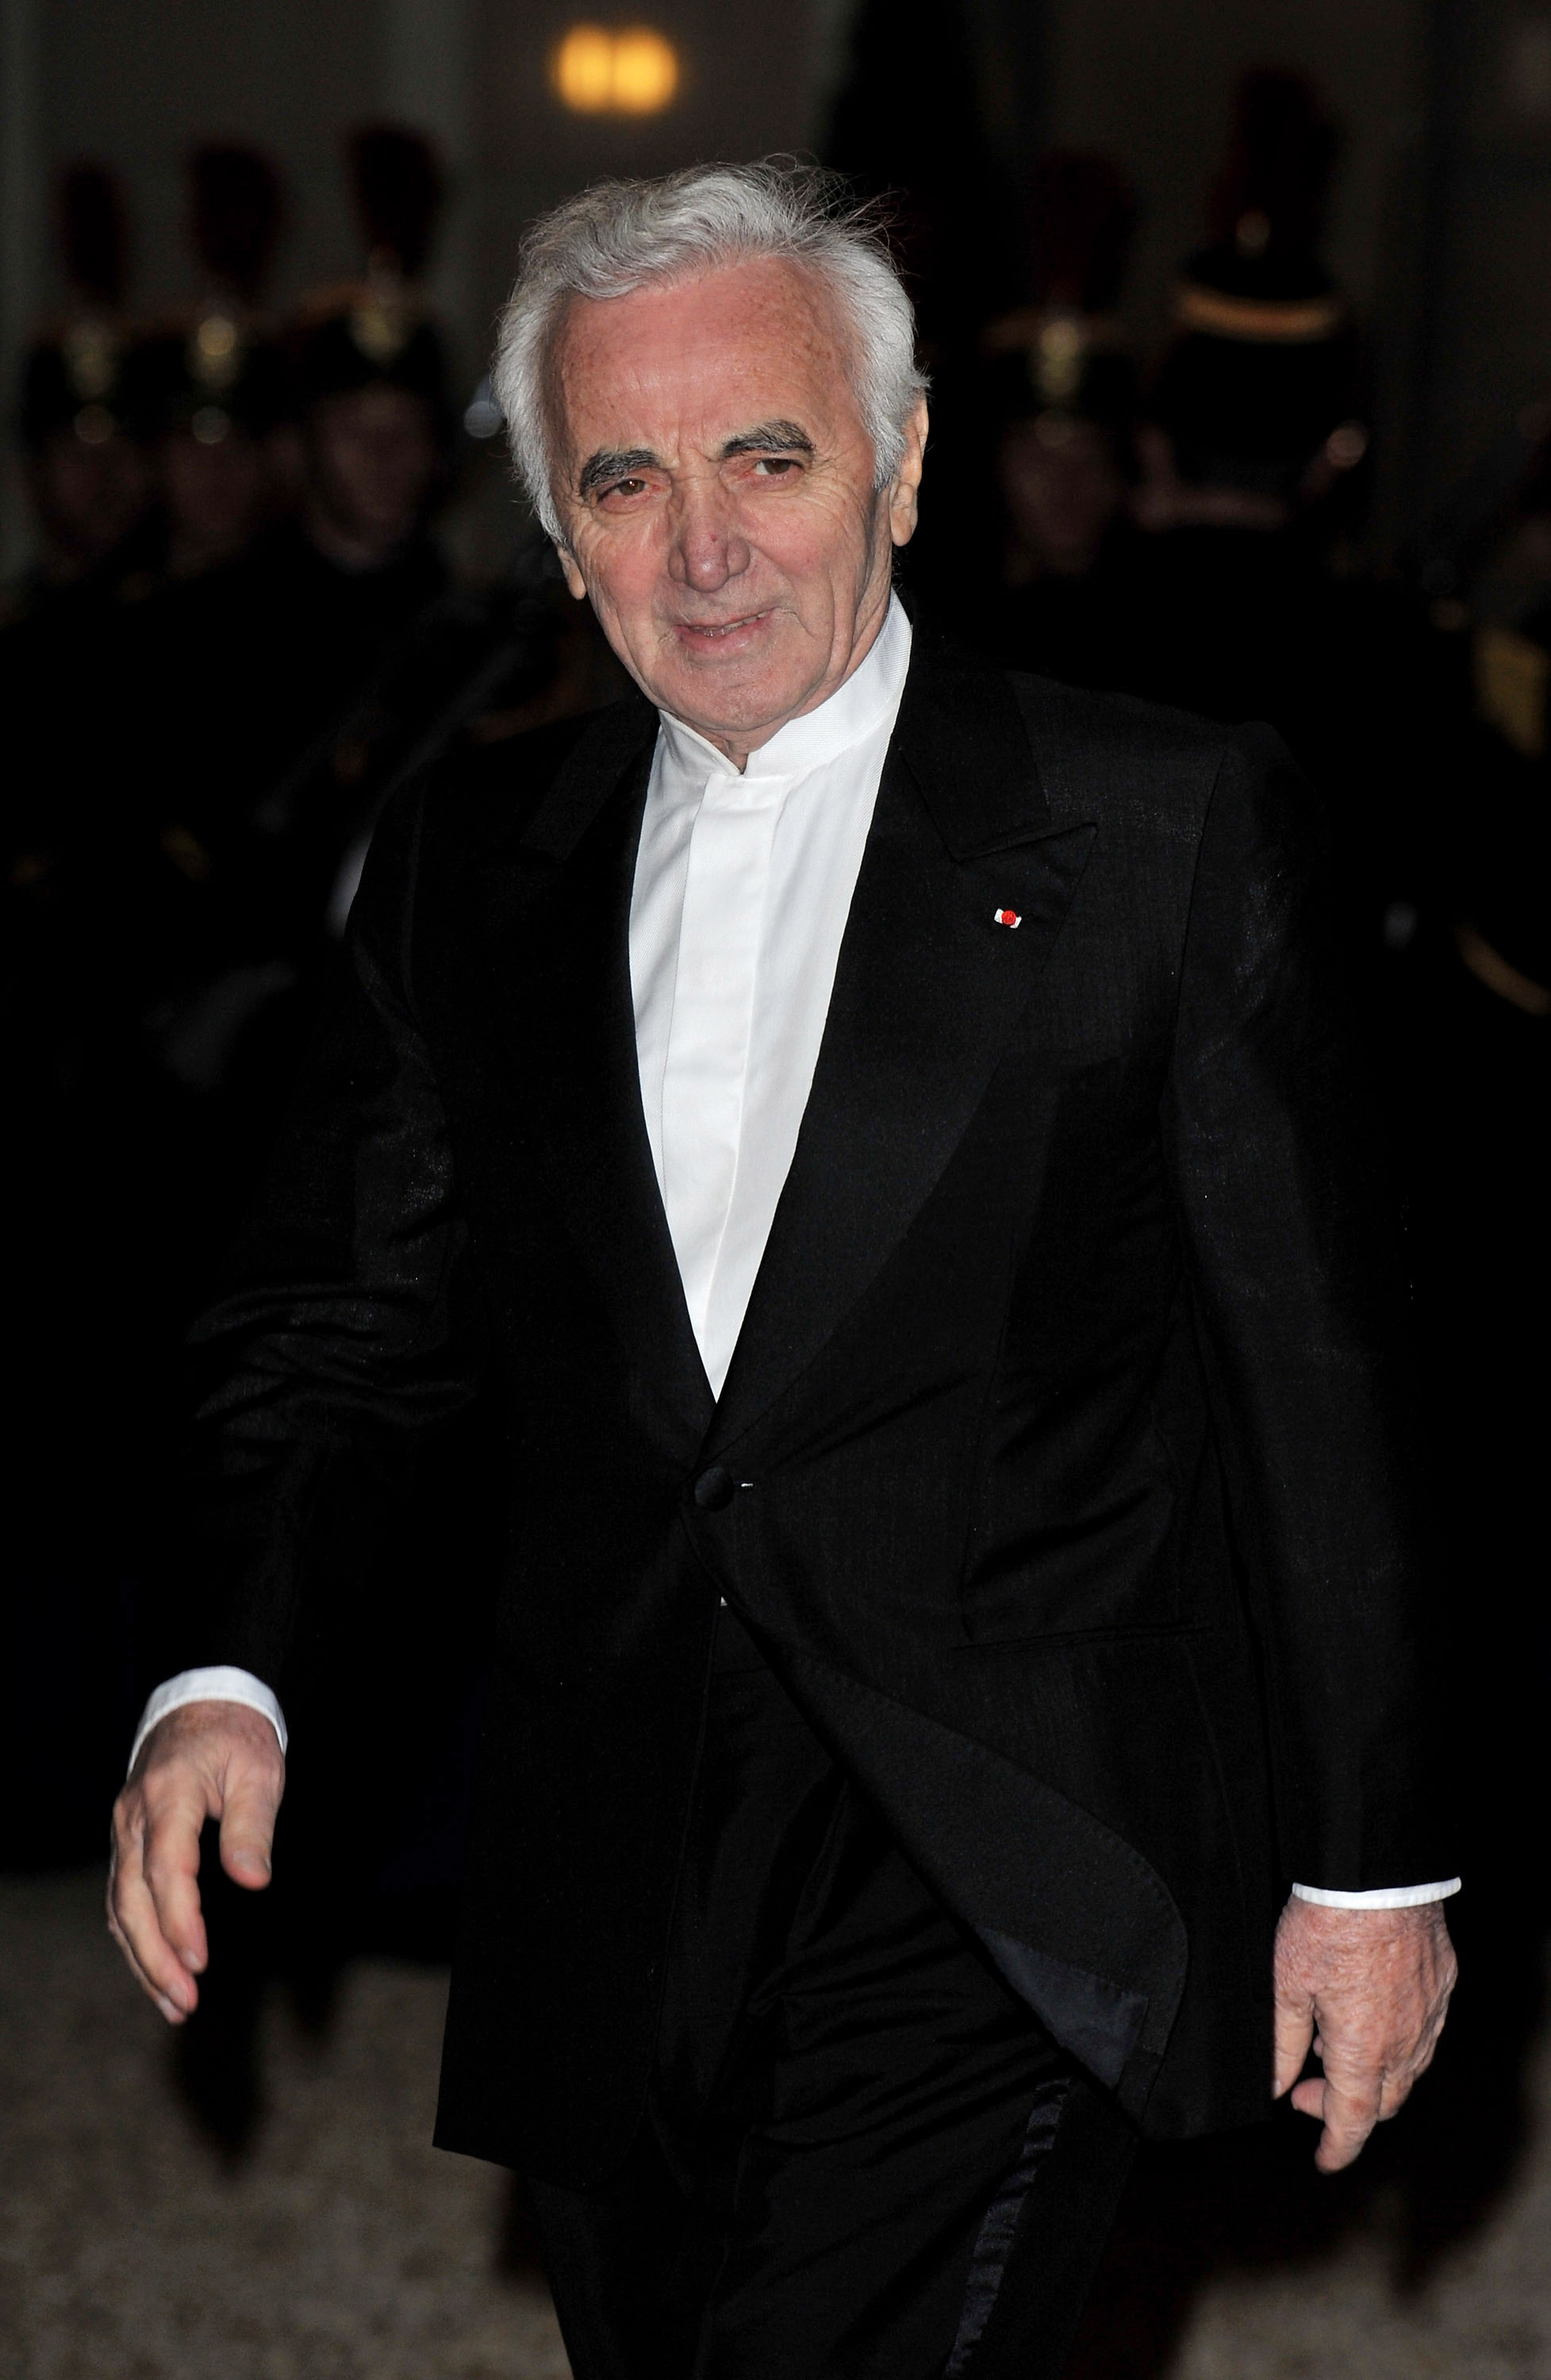 Singer Charles Aznavour arrives to attend a state dinner honouring visiting Russian President Dmitry Medvedev at the Elysee Palace on March 2, 2010 in Paris, France.